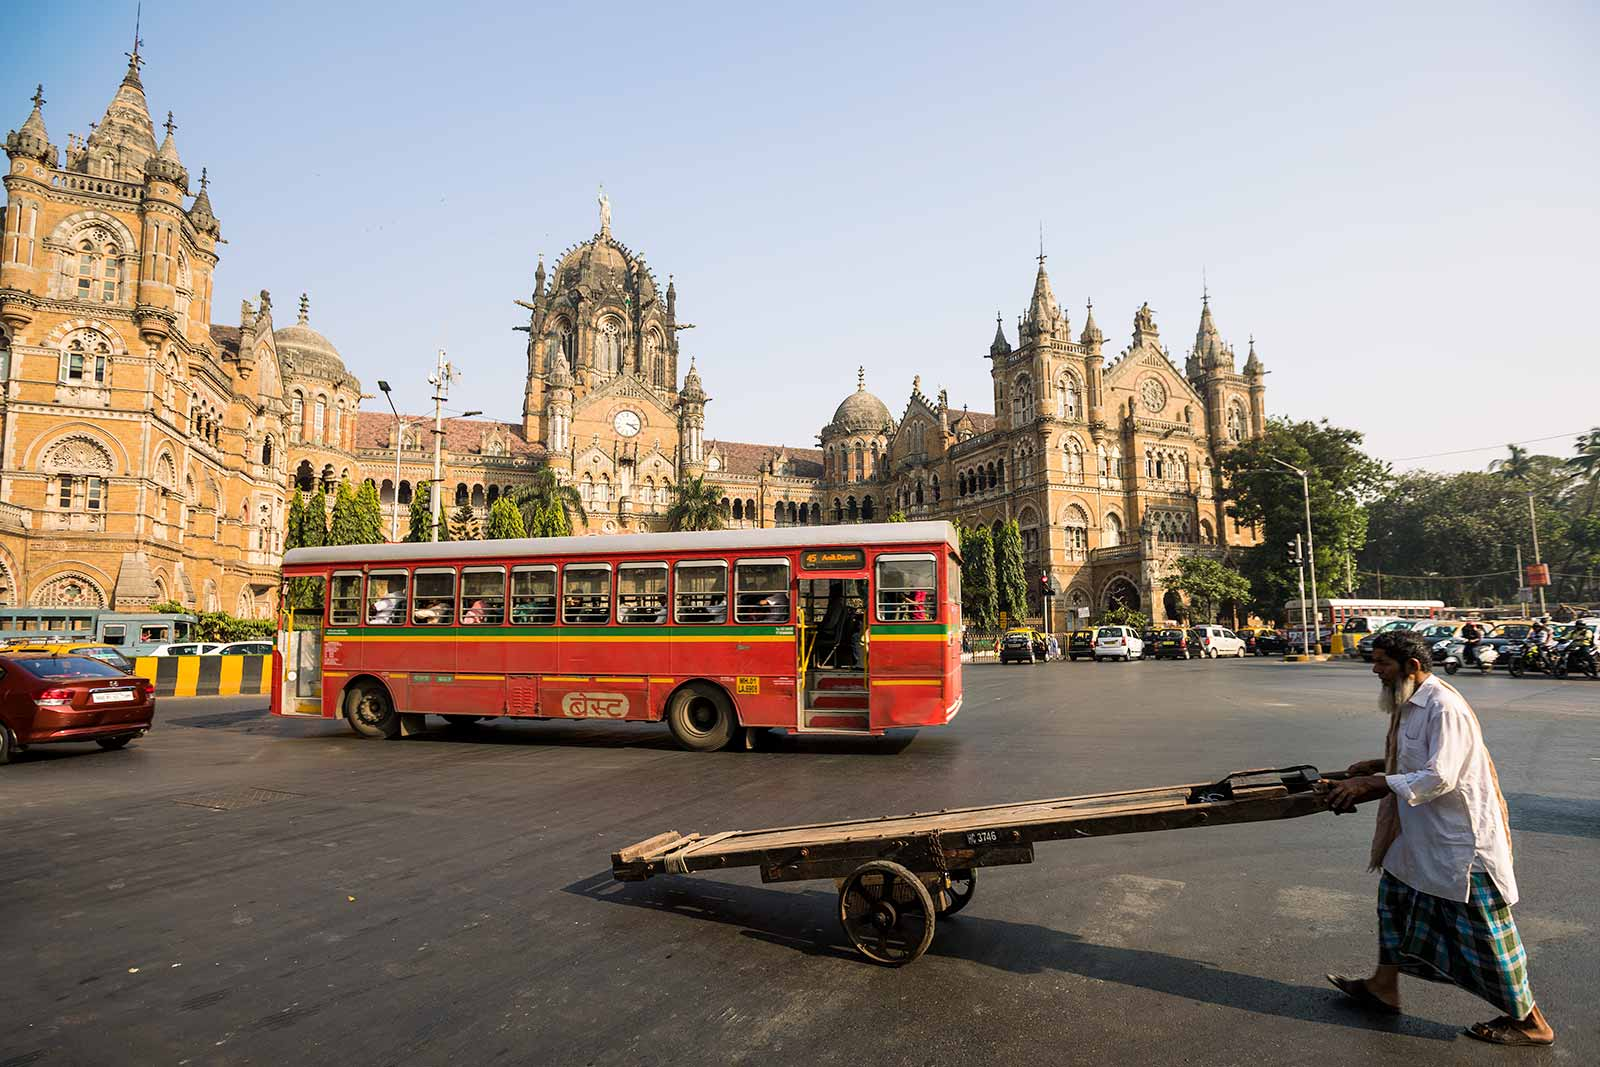 Chhatrapati Shivaji Terminus is an outstanding example of the meeting of two cultures, as British architects worked with Indian craftsmen to include Indian architectural tradition.